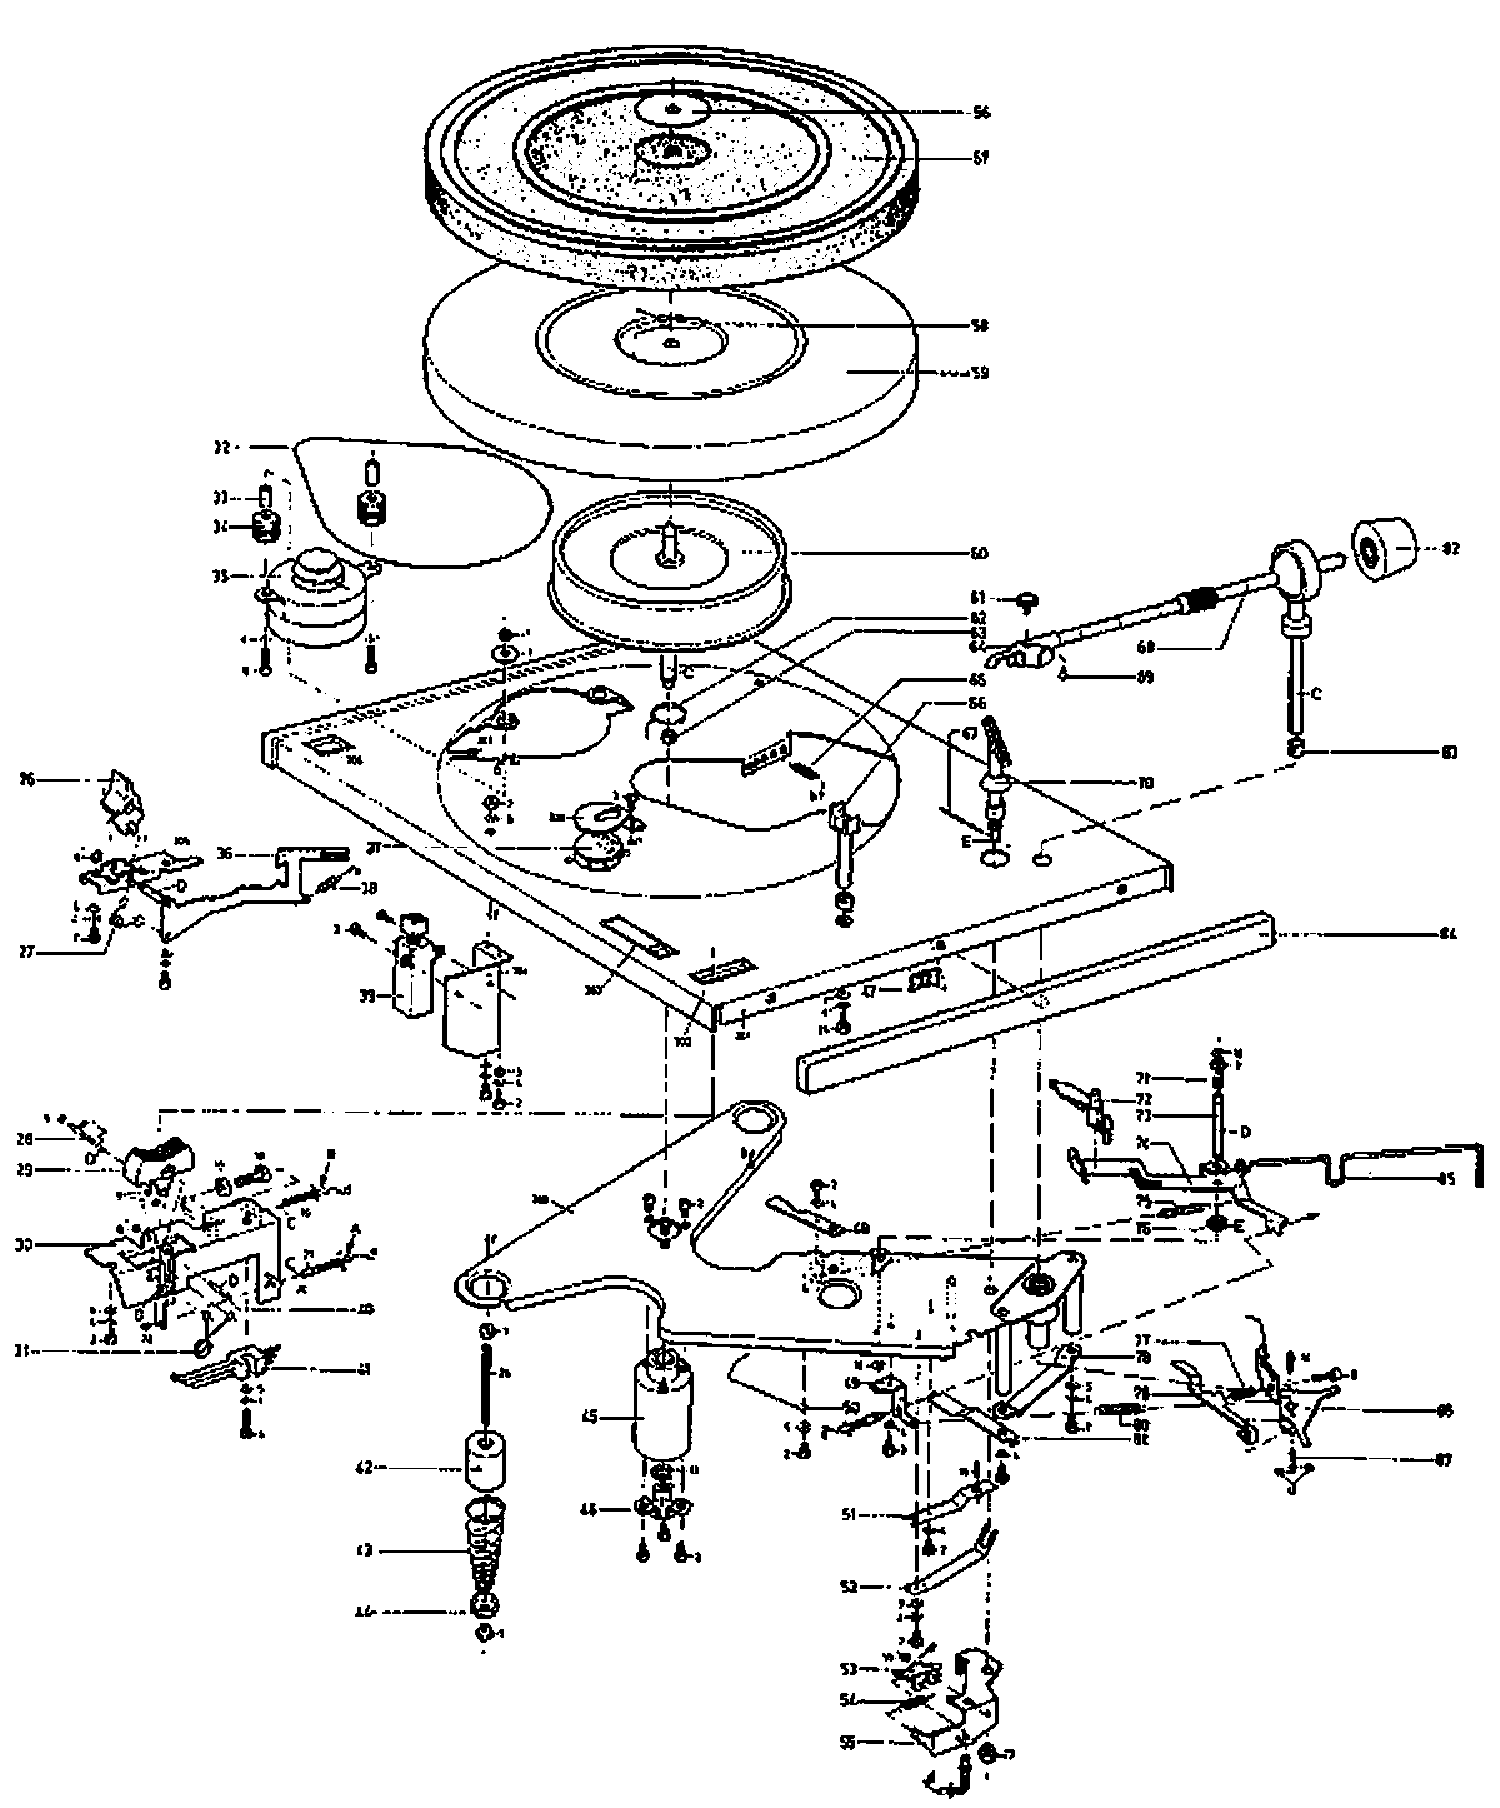 Amazing parking brake module wiring diagram 2010 lr4 land rover philips 22gc017 record player 1969 sm